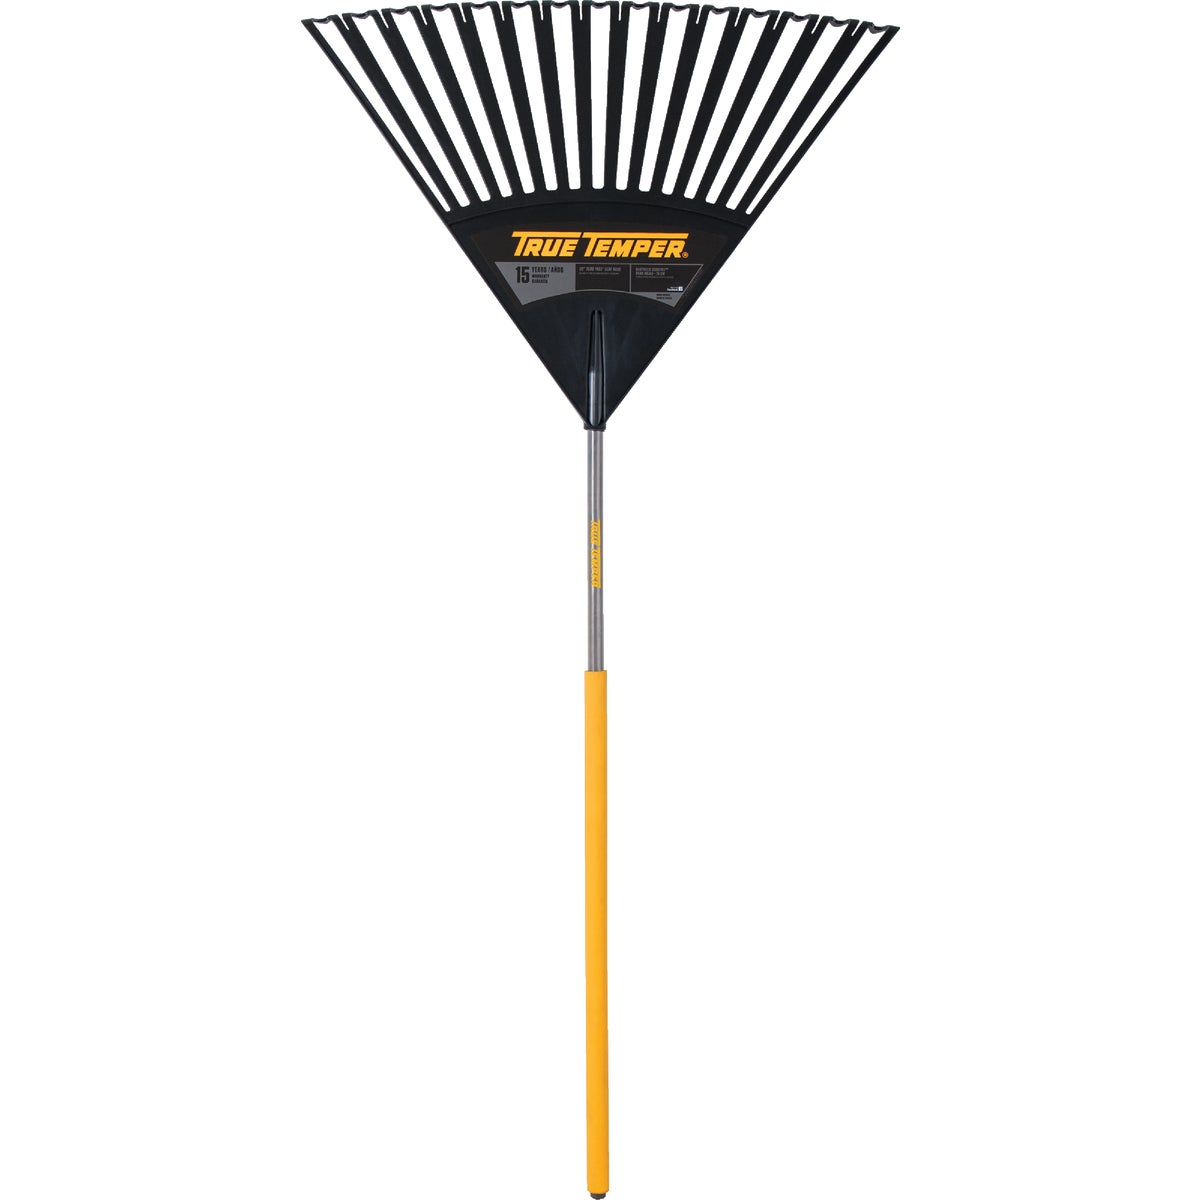 "30"" CLOG FREE POLY RAKE - 1906500 by Ames True Temper"